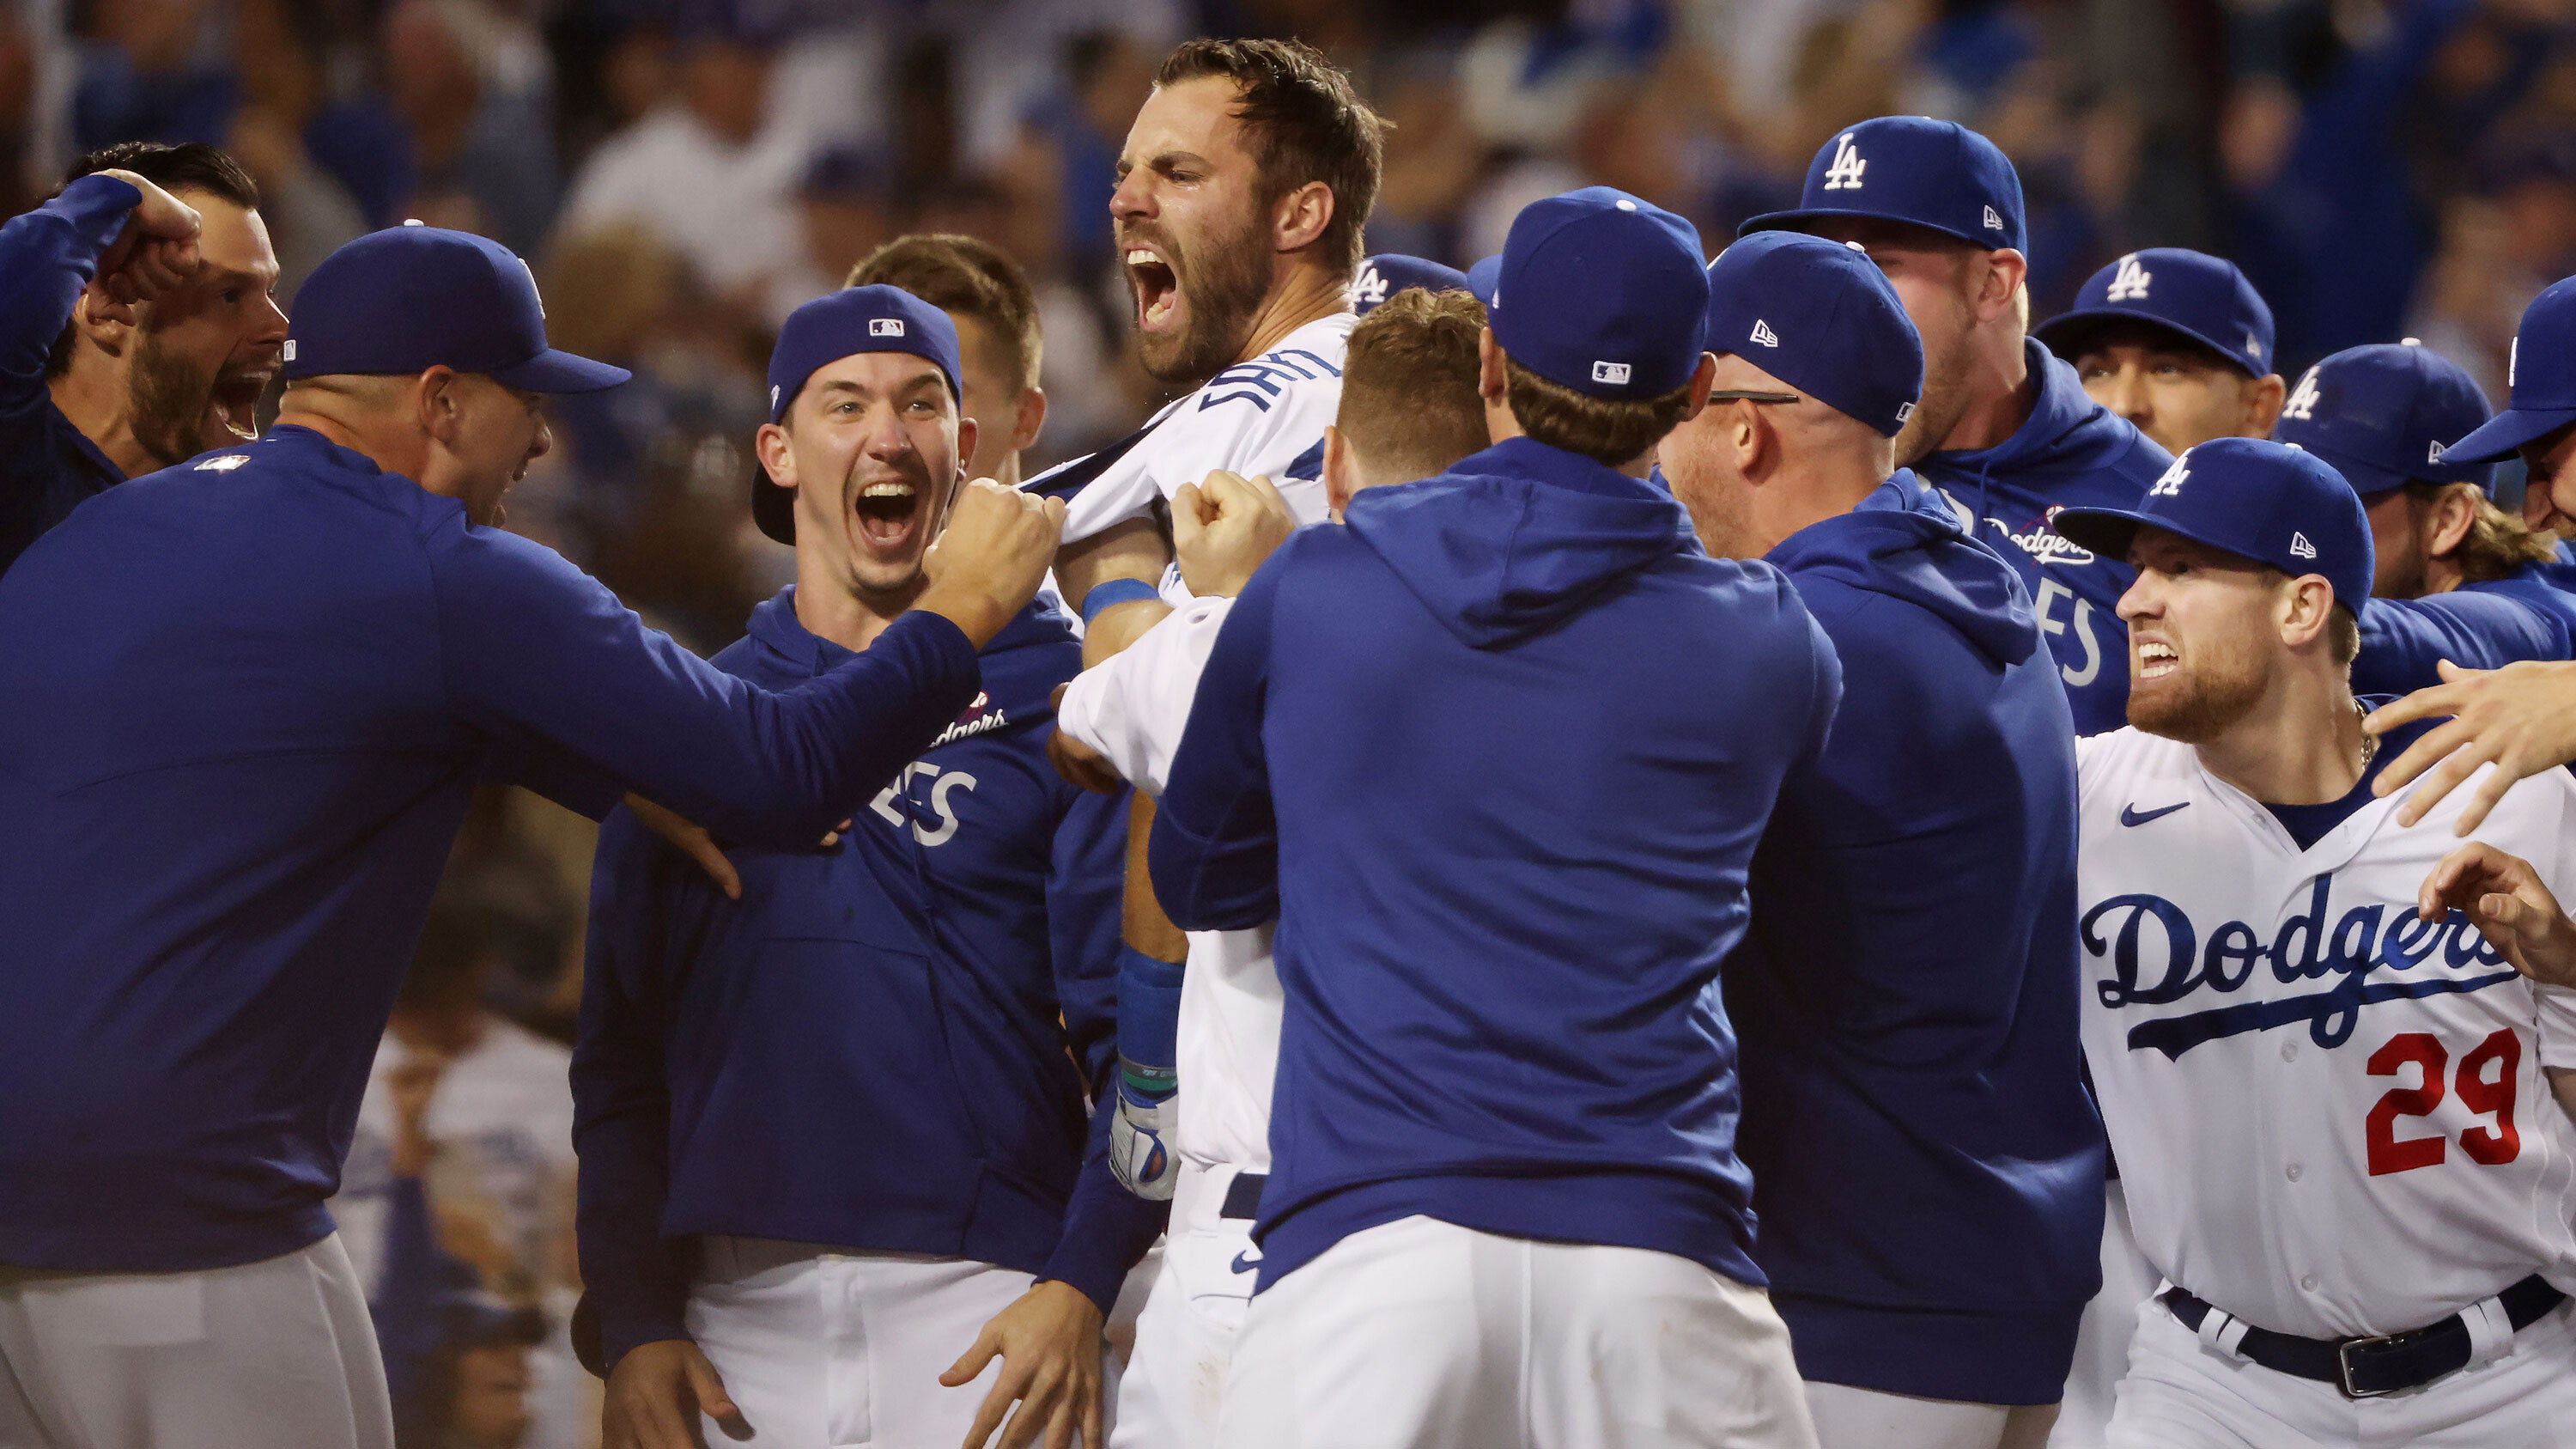 Dynasties and bragging rights are at stake as the MLB playoffs heat up